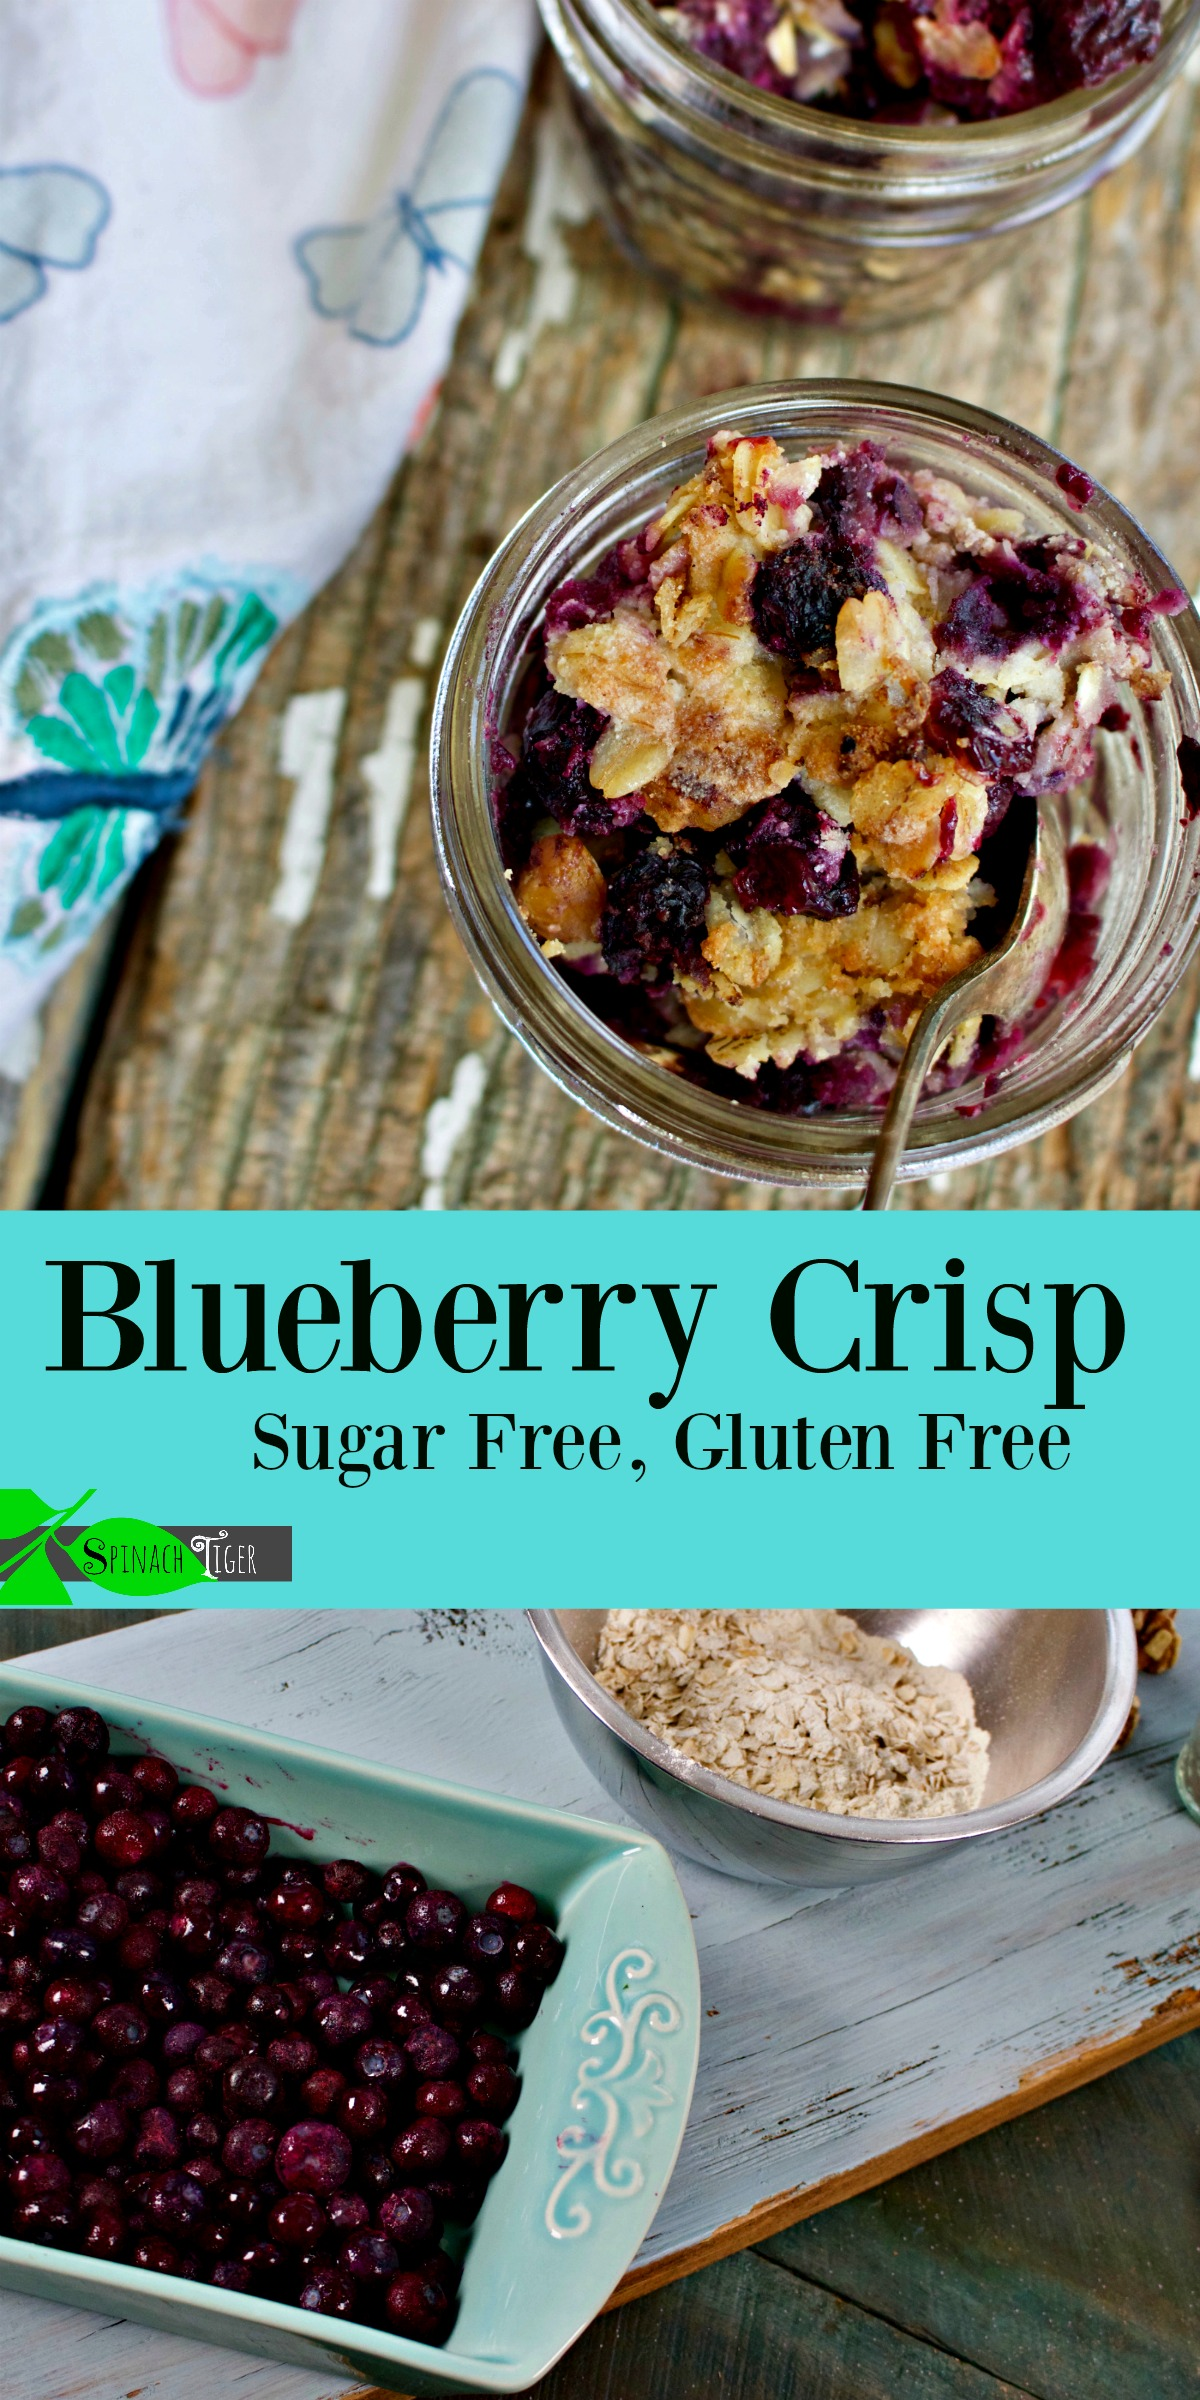 How to Make Easy Blueberry Crisp Recipe. Easy and Gluten Free from Spinach Tiger